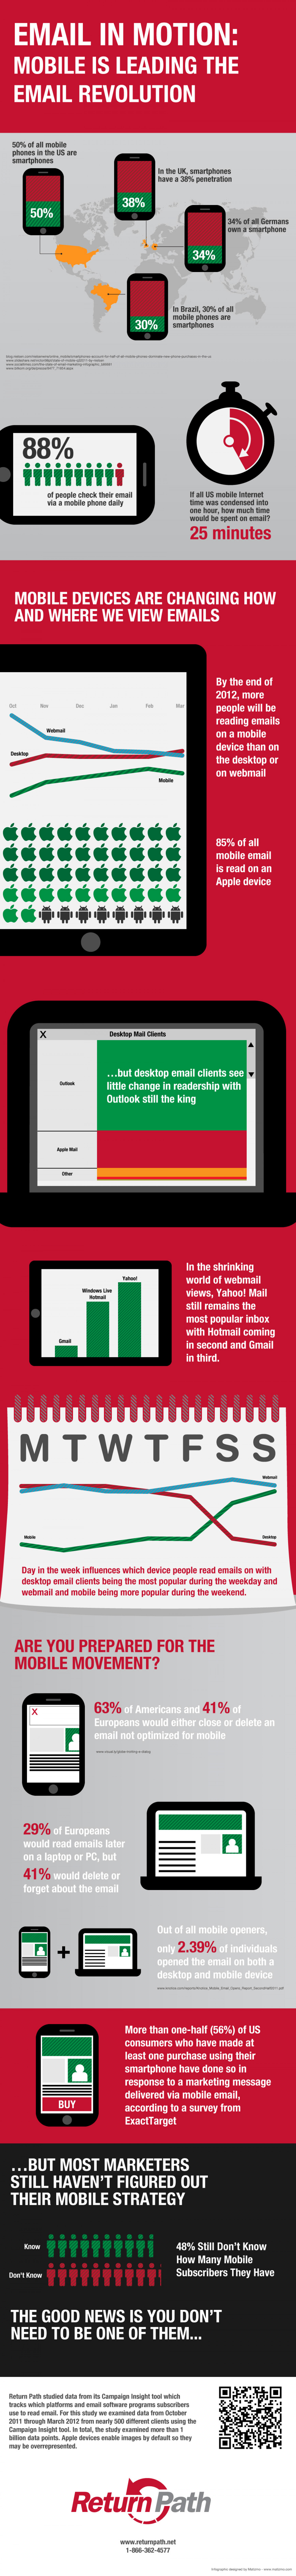 Email in Motion:  Mobile is Leading the Email Revolution Infographic